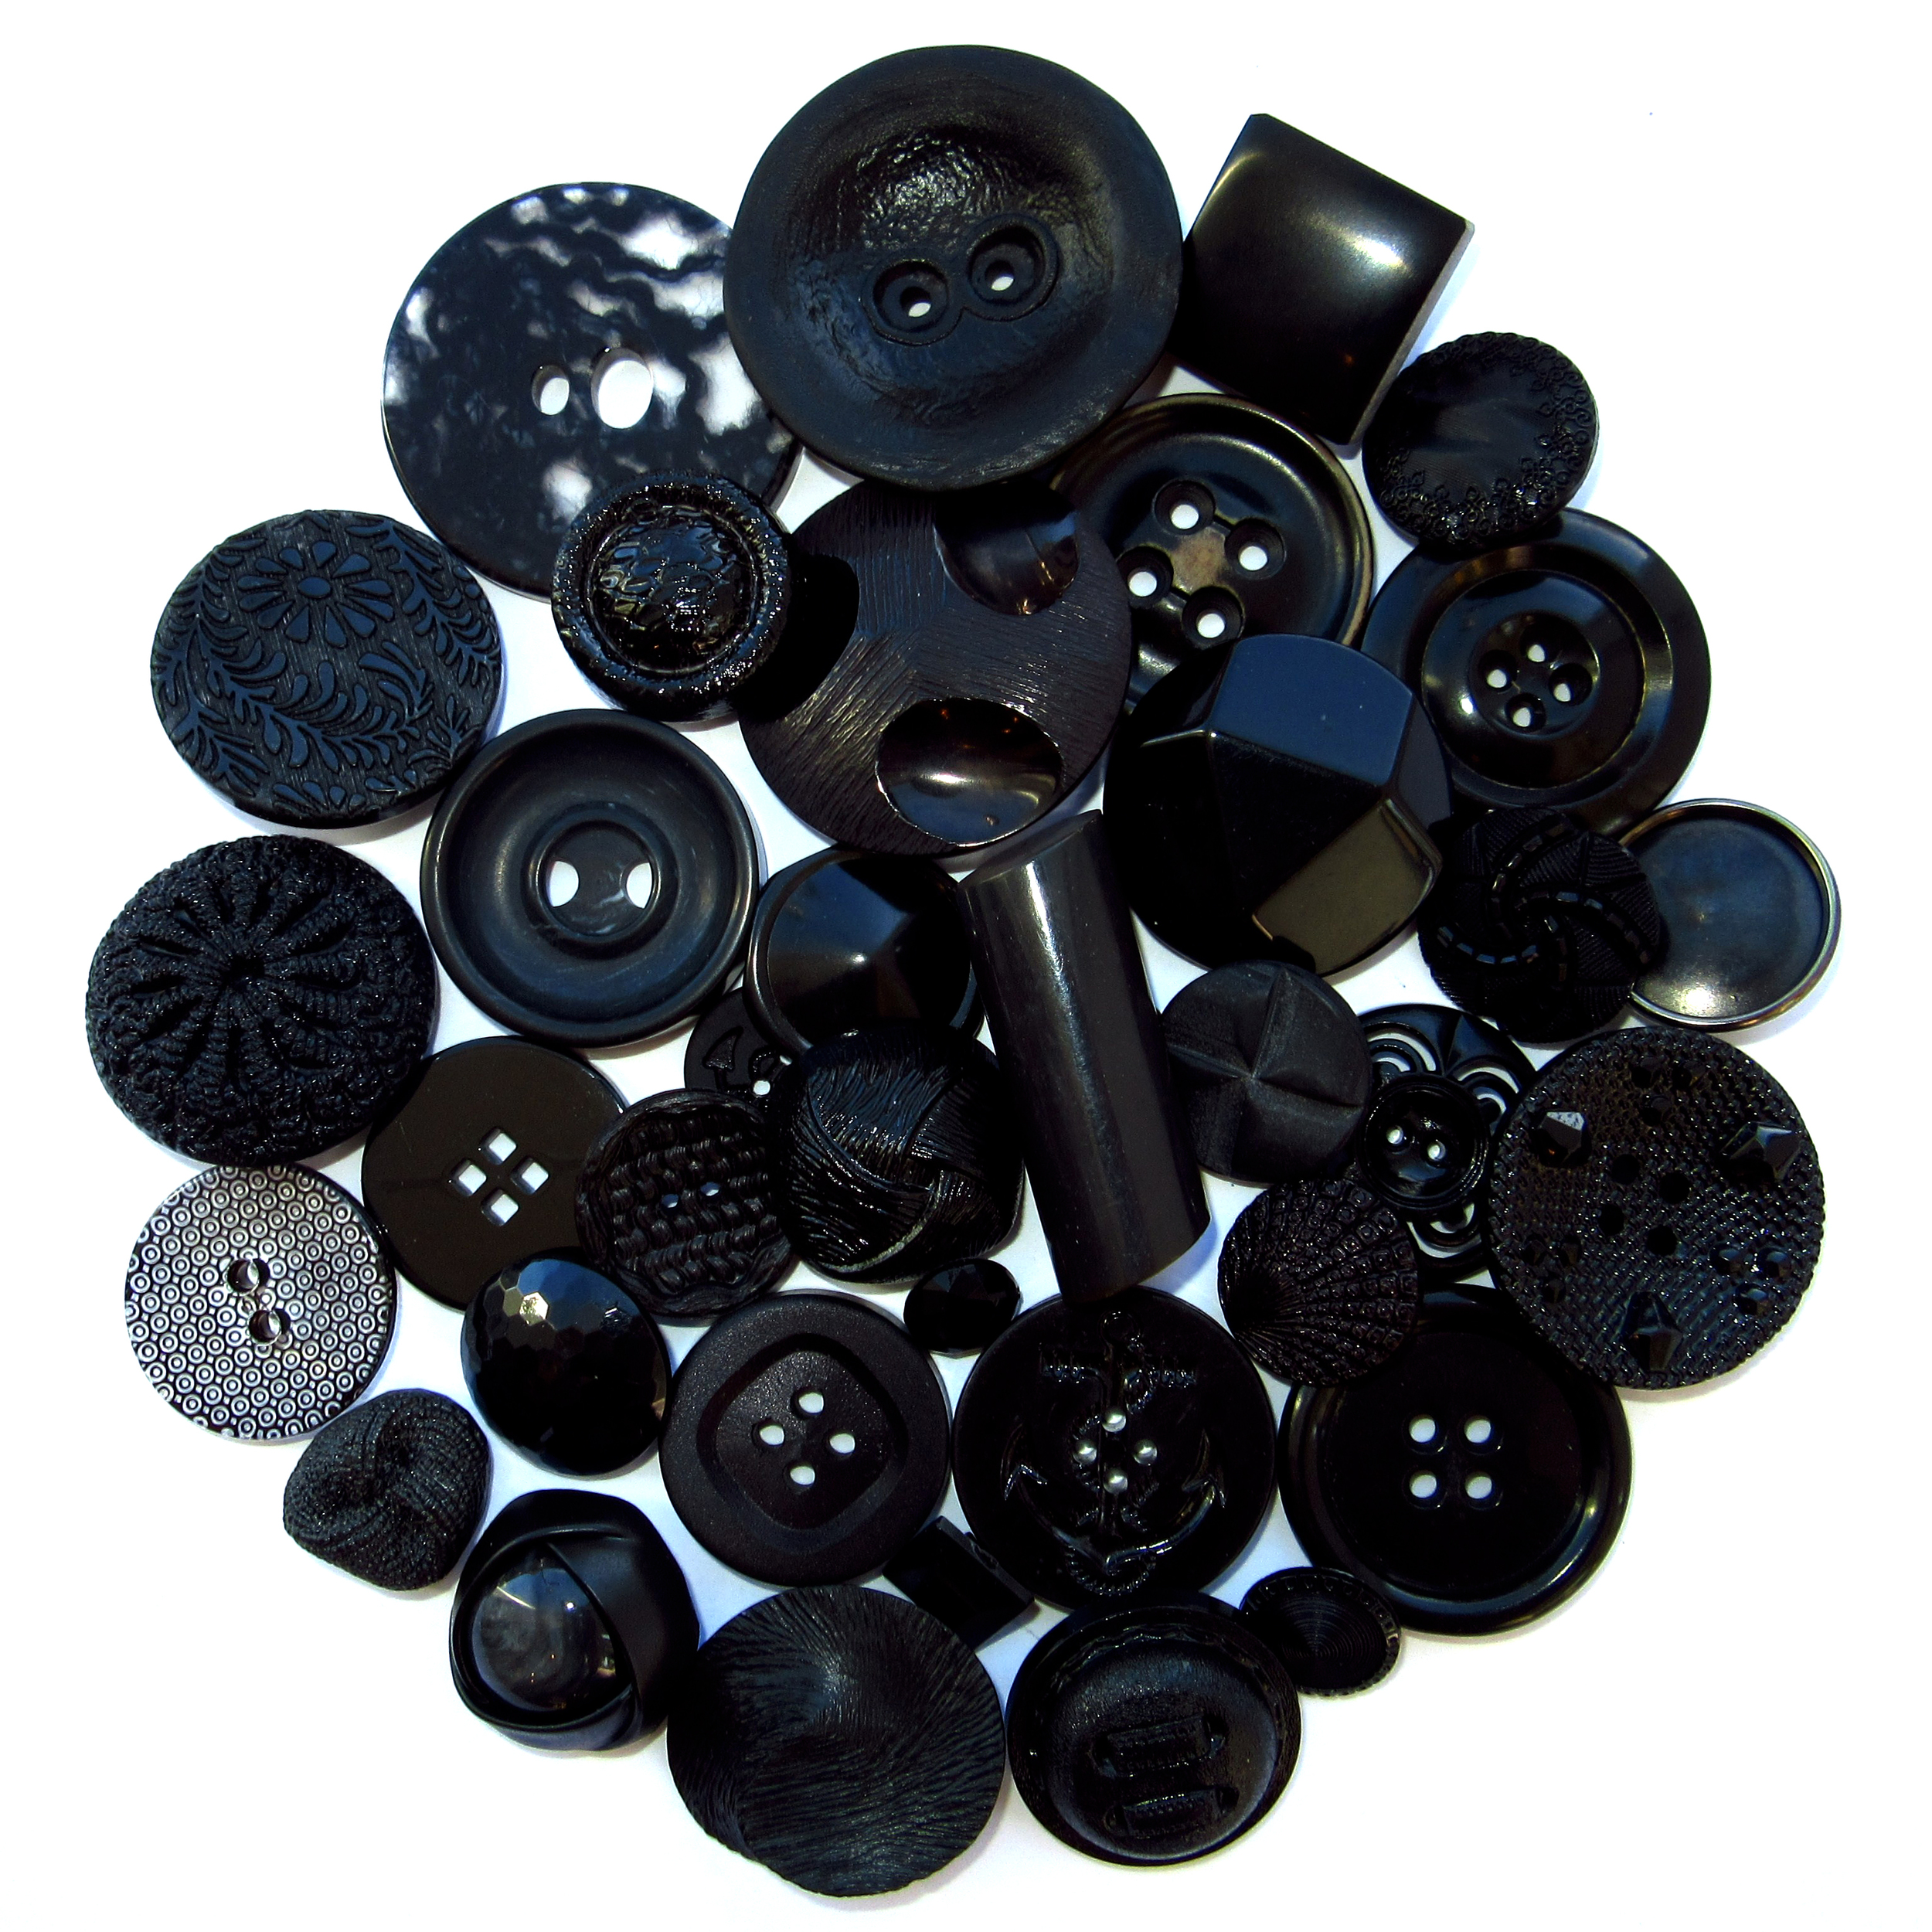 Boutons noirs